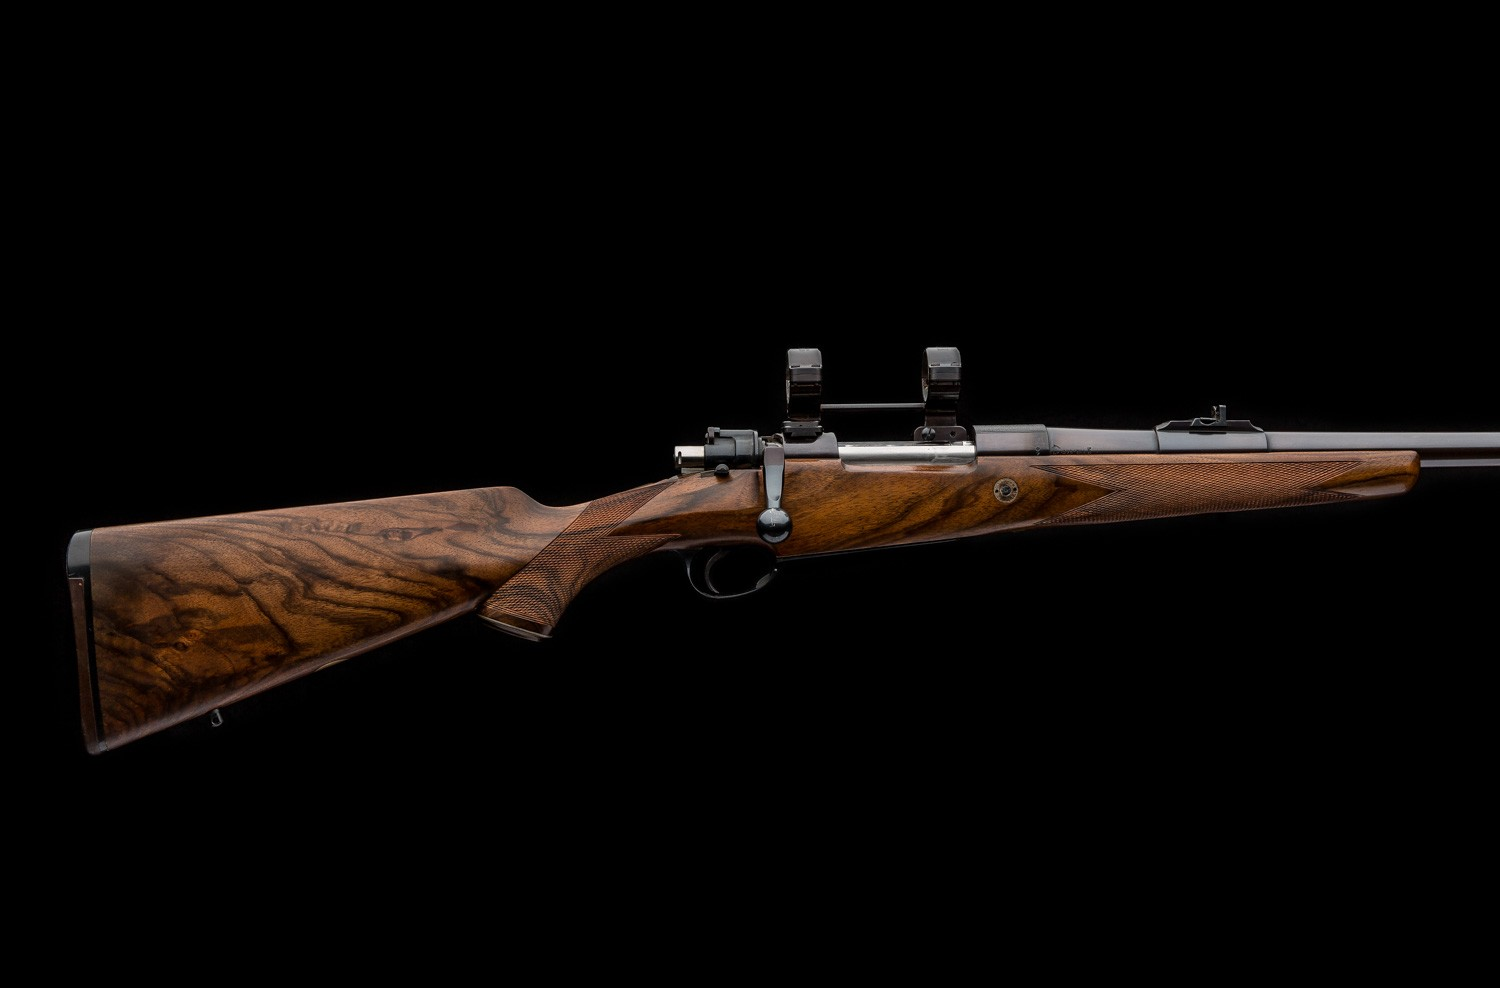 Holland Amp Holland 375 H Amp H Bolt Action Rifle Wr Used Guns